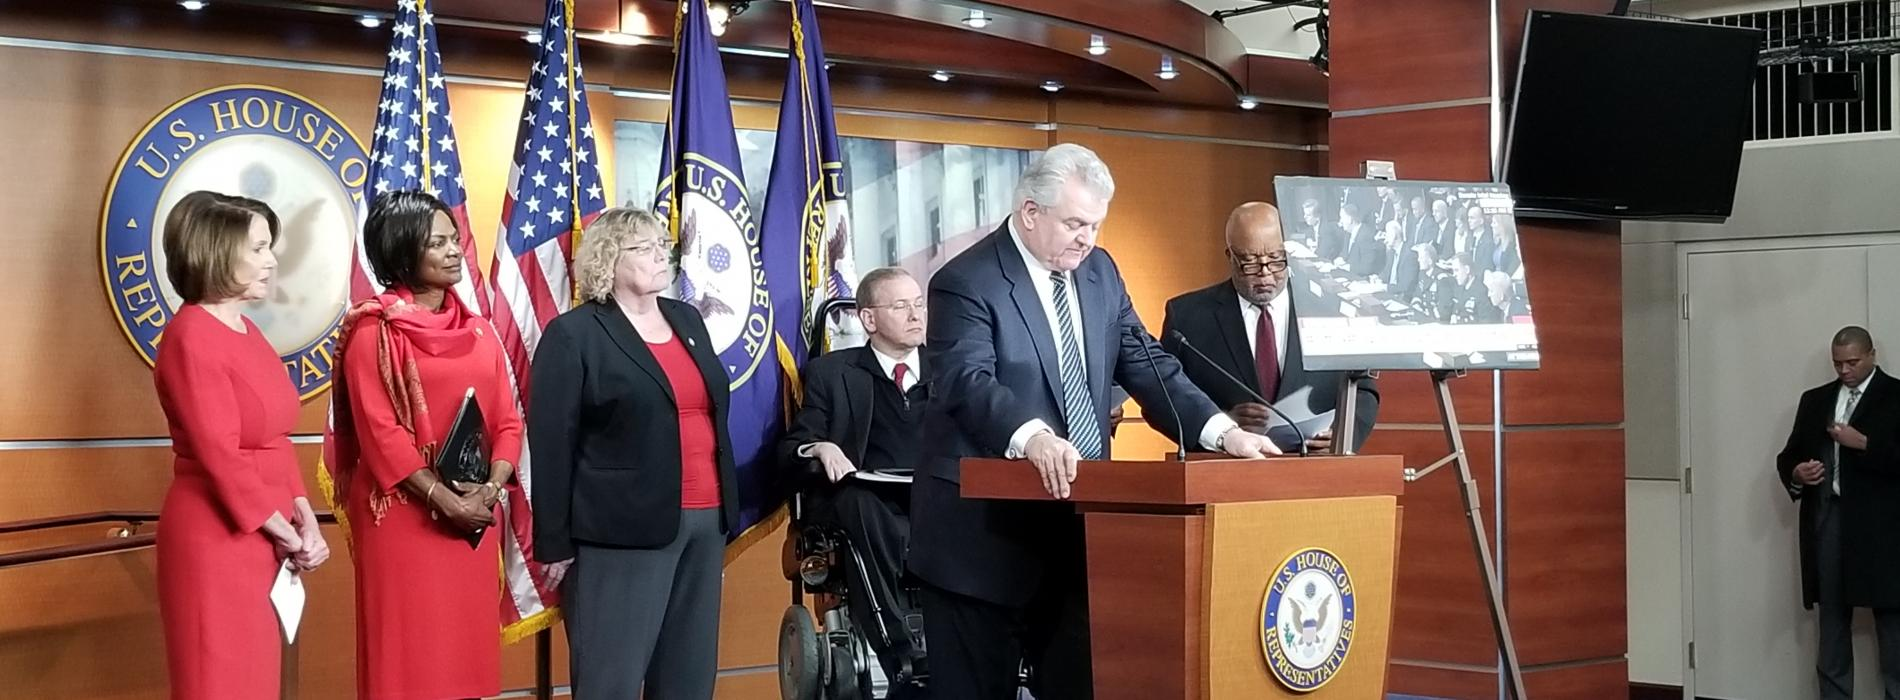 he Congressional Task Force on Election Security Press Conference